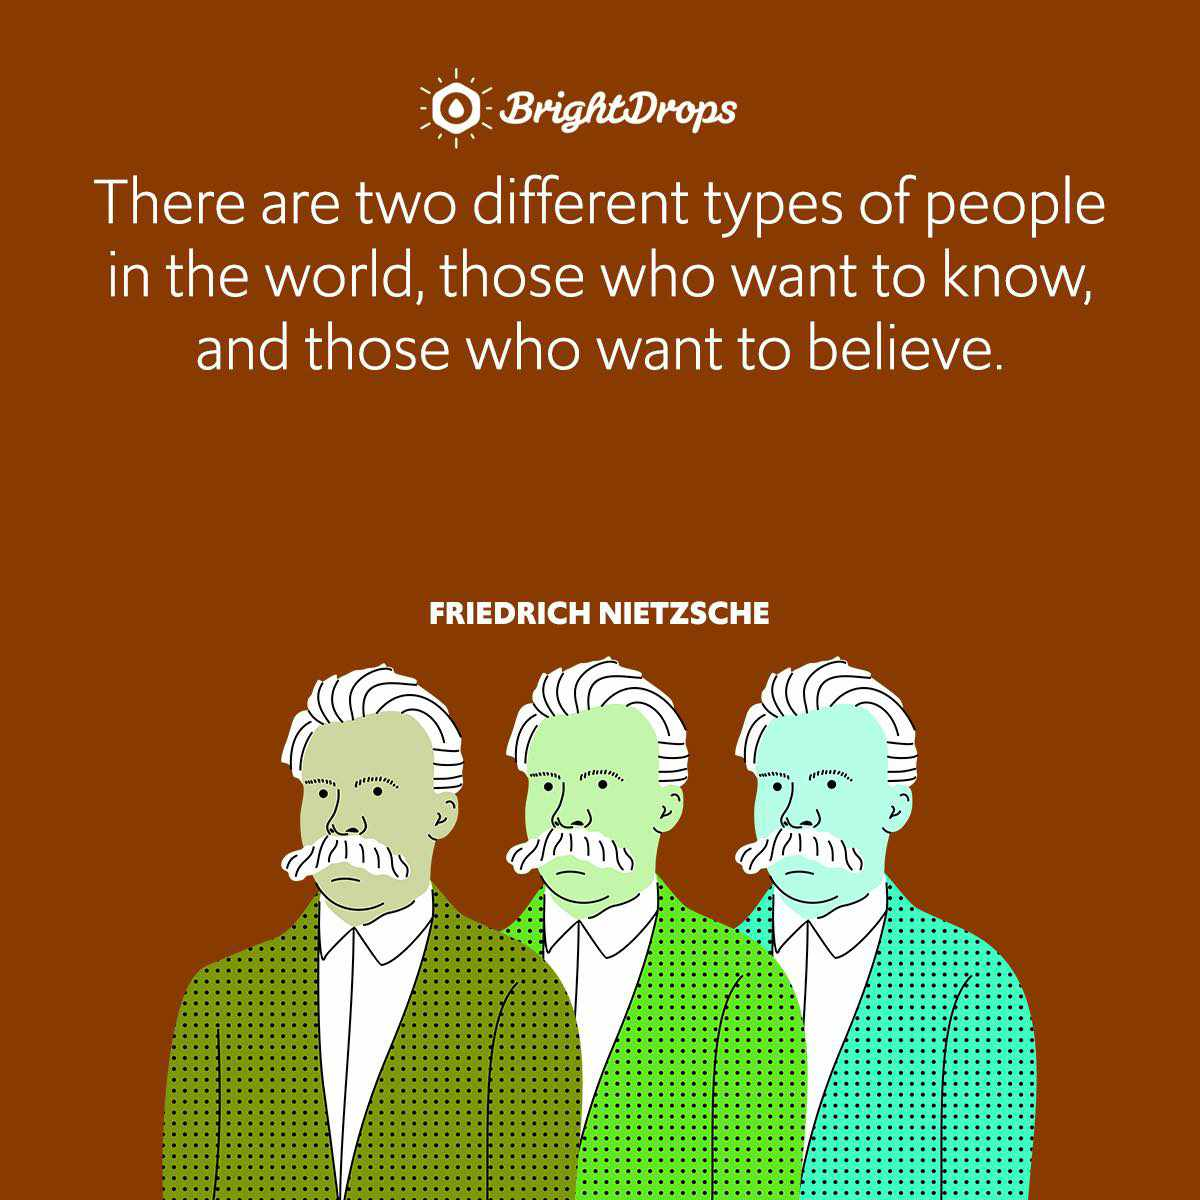 There are two different types of people in the world, those who want to know, and those who want to believe.